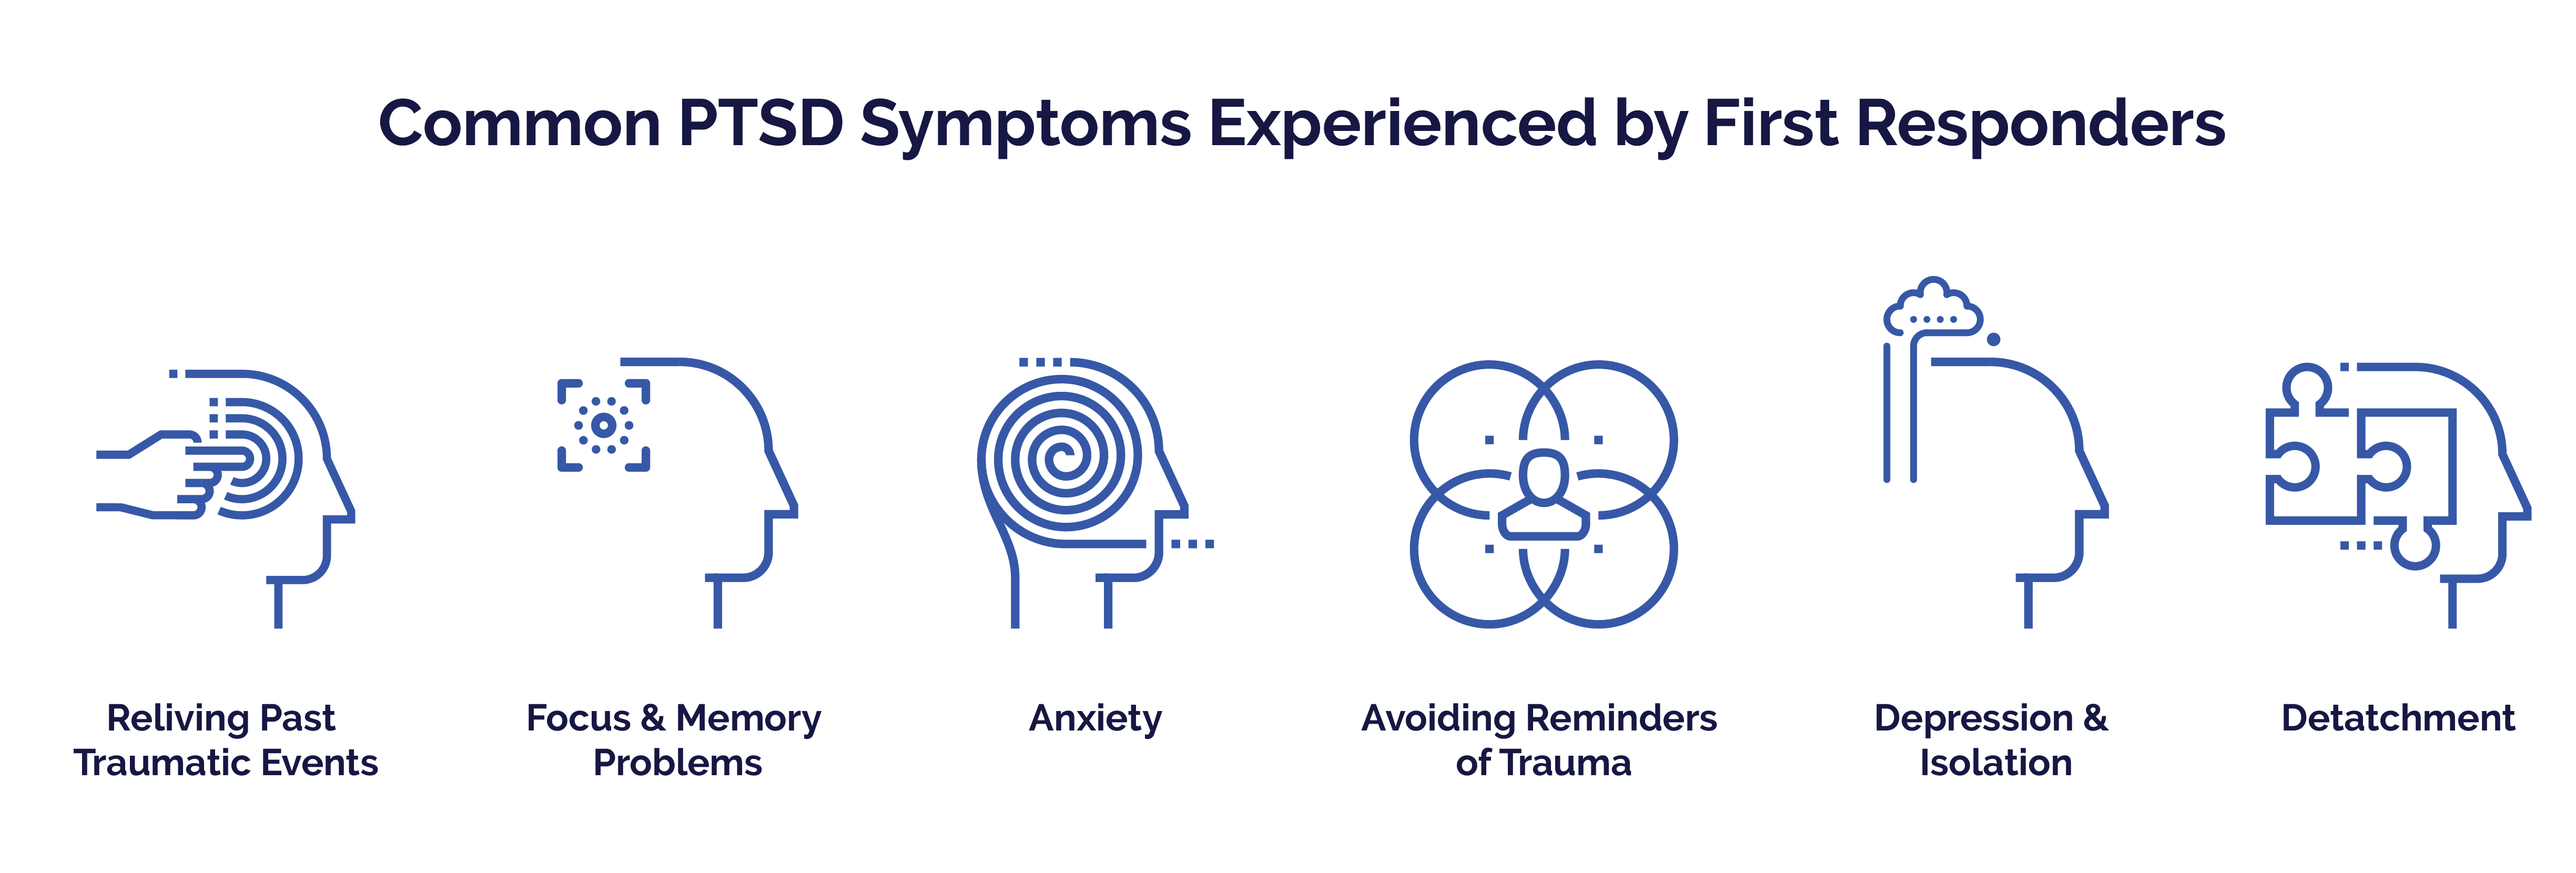 First Responders Guide - Common PTSD Symptoms